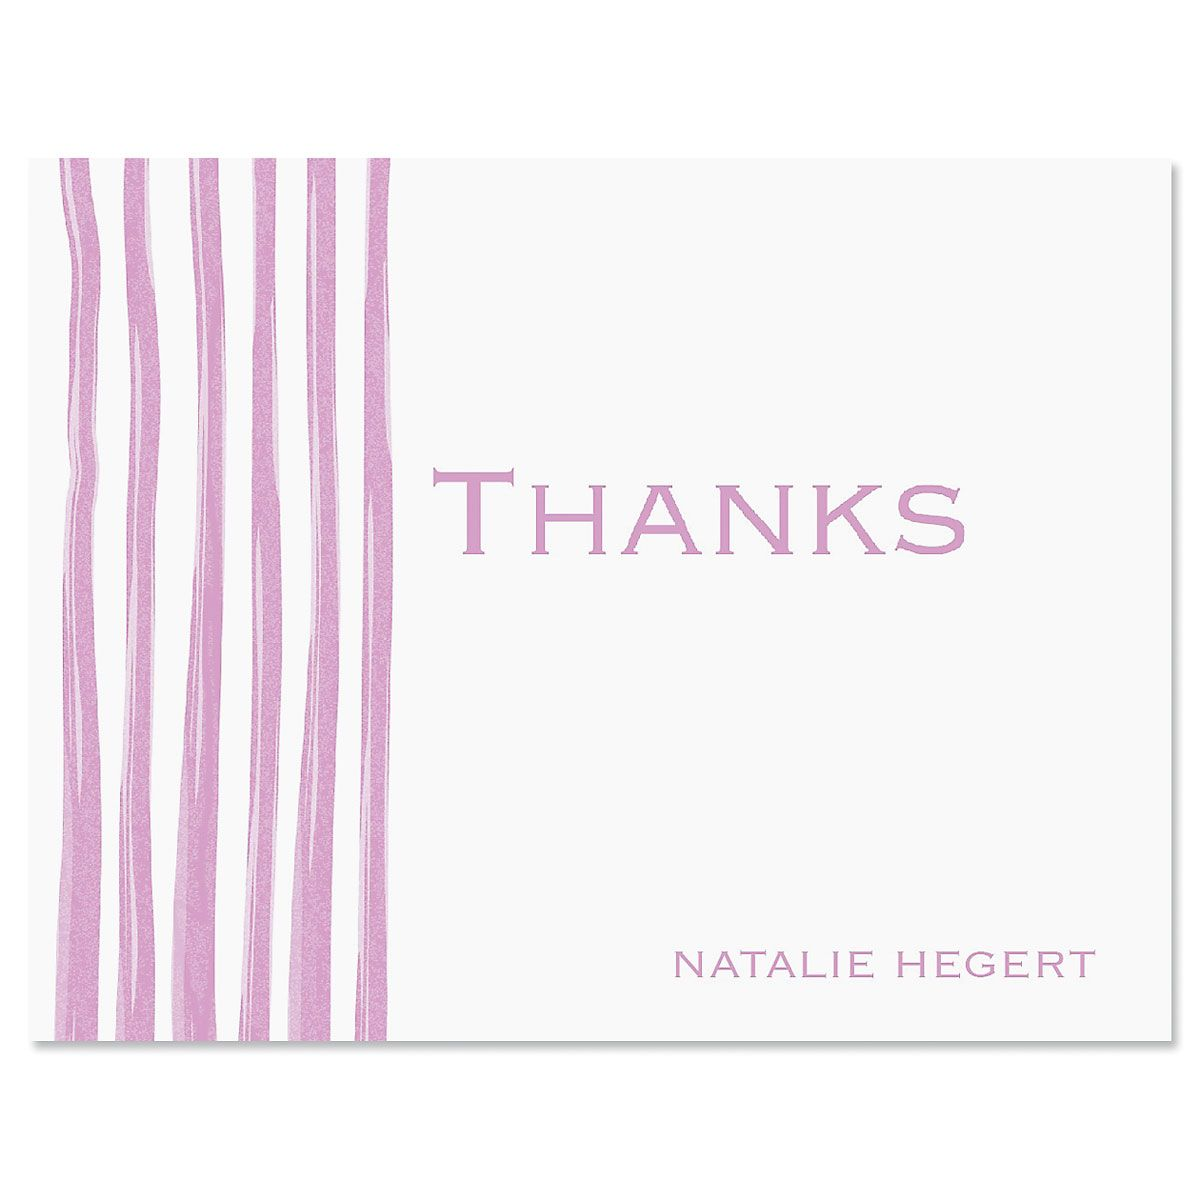 Sheer Delight Thank You Cards-Lavender-609279A